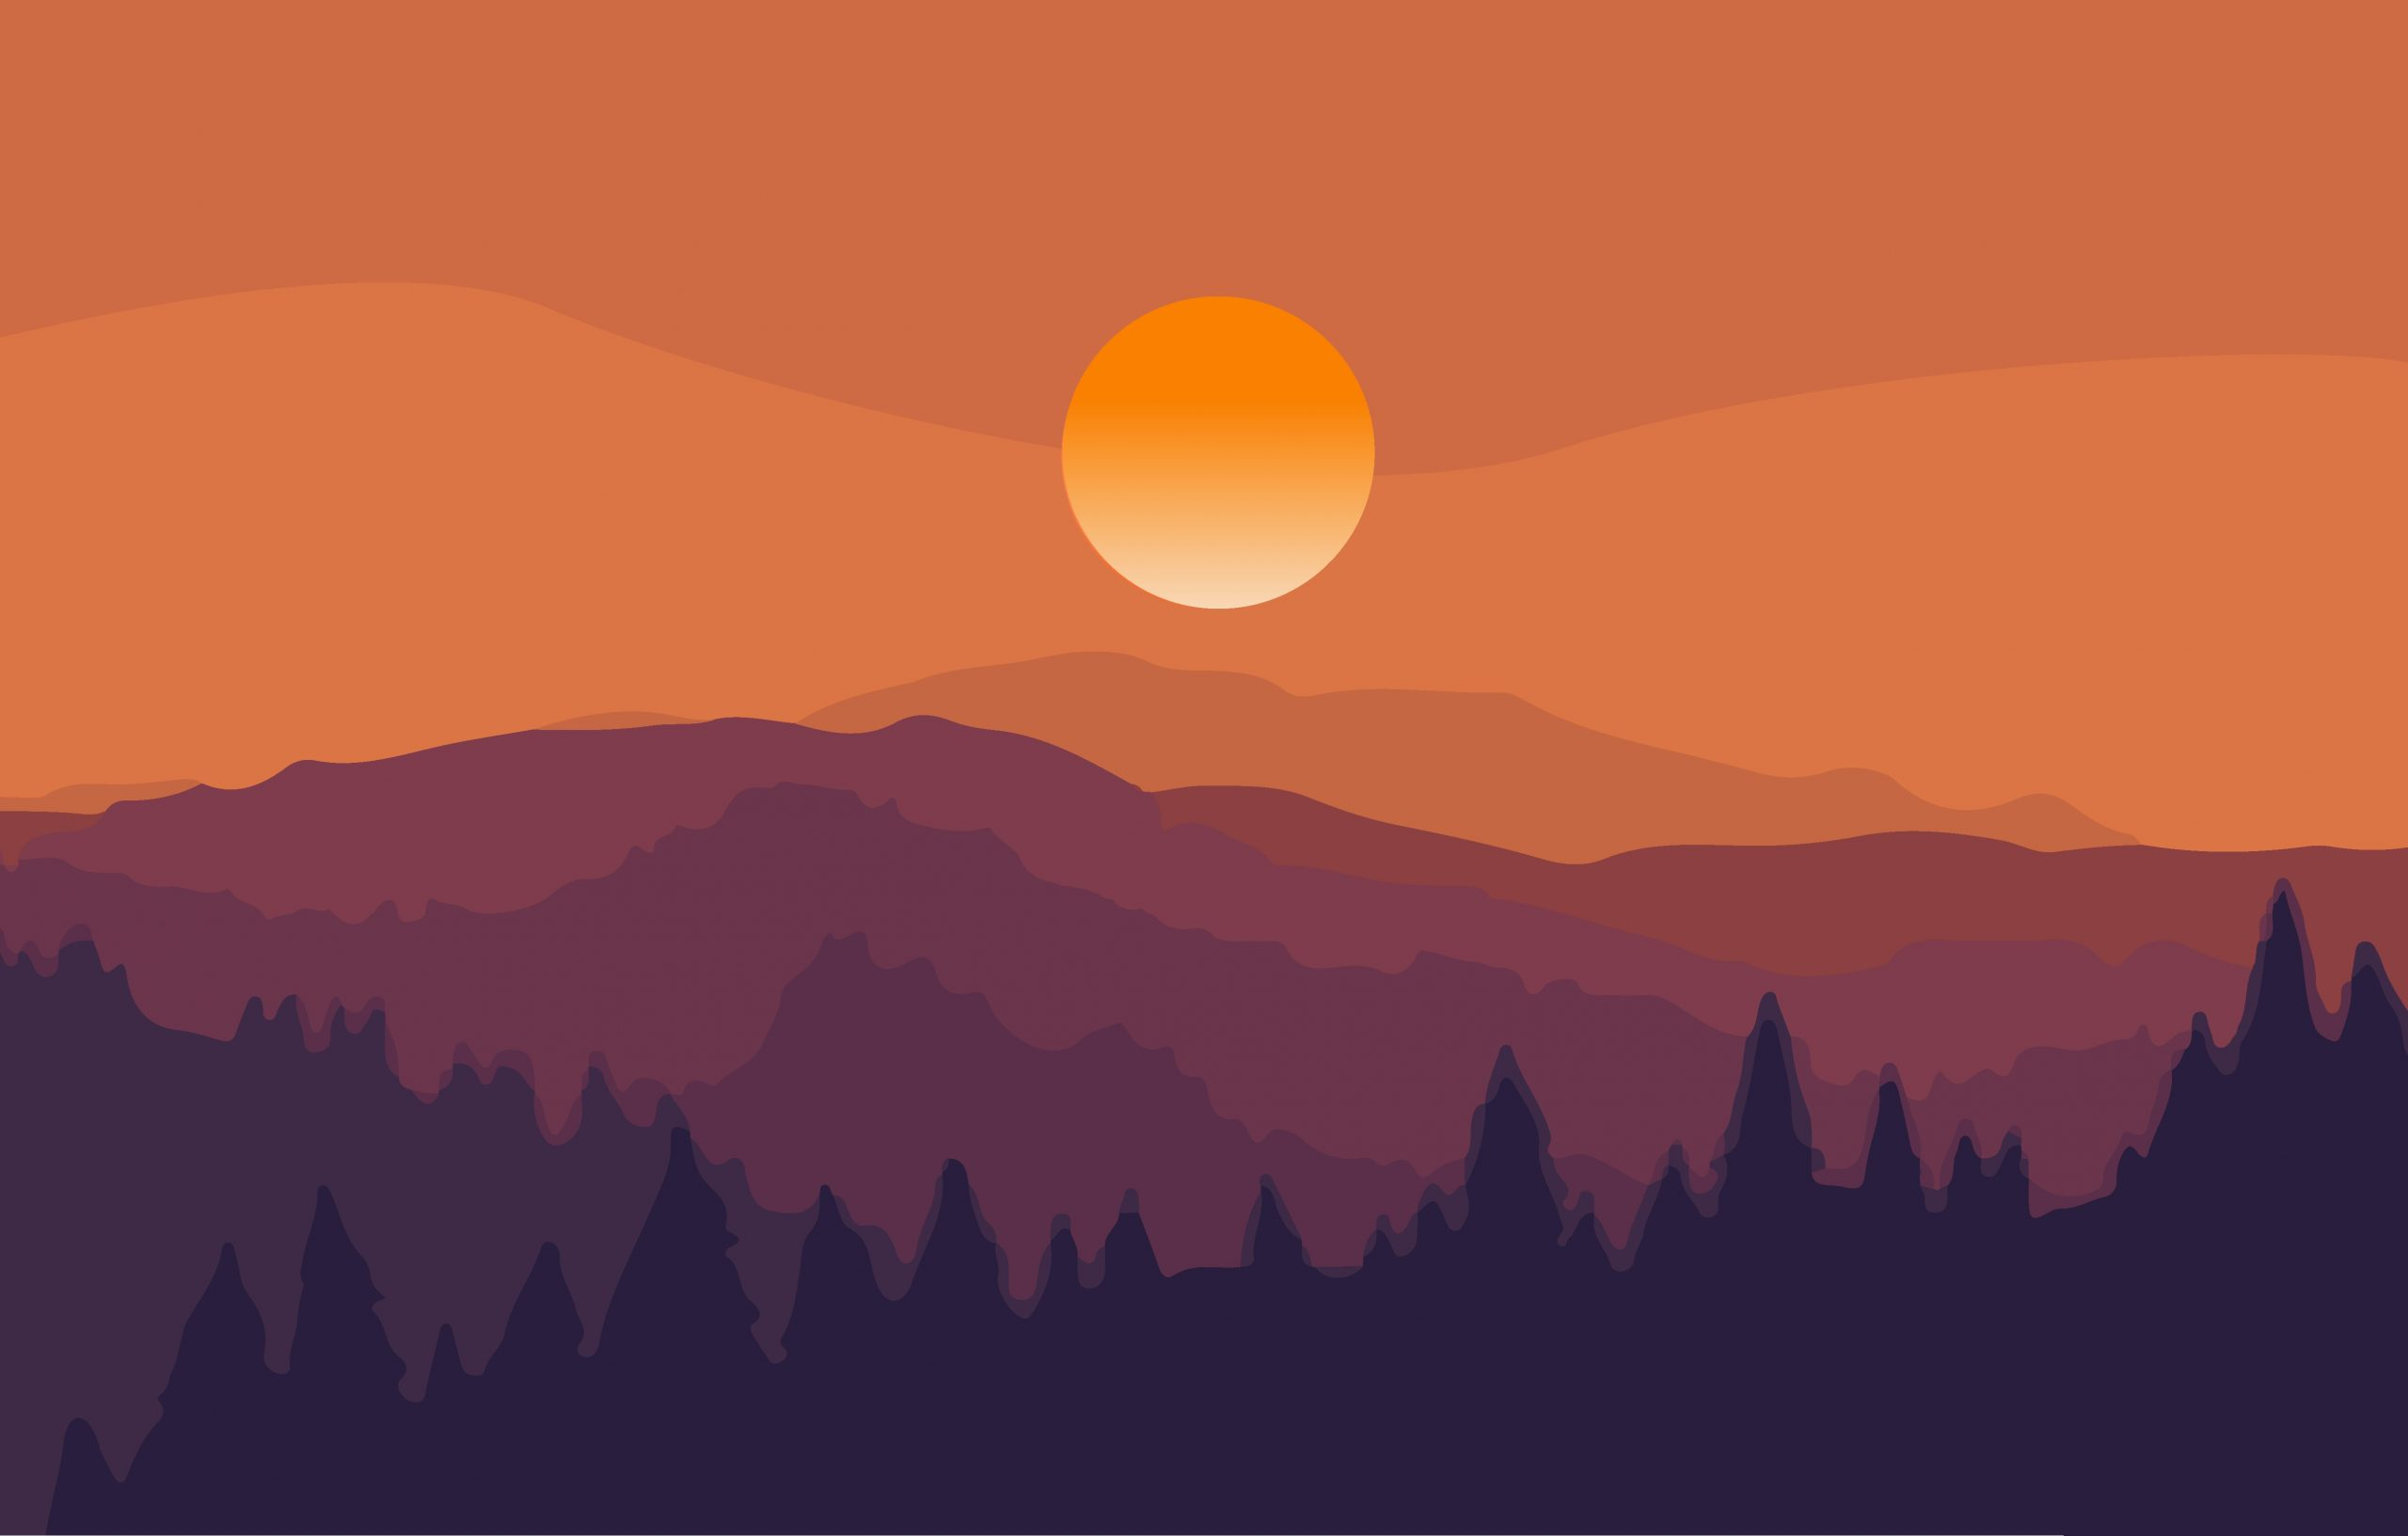 Sunset through mountains